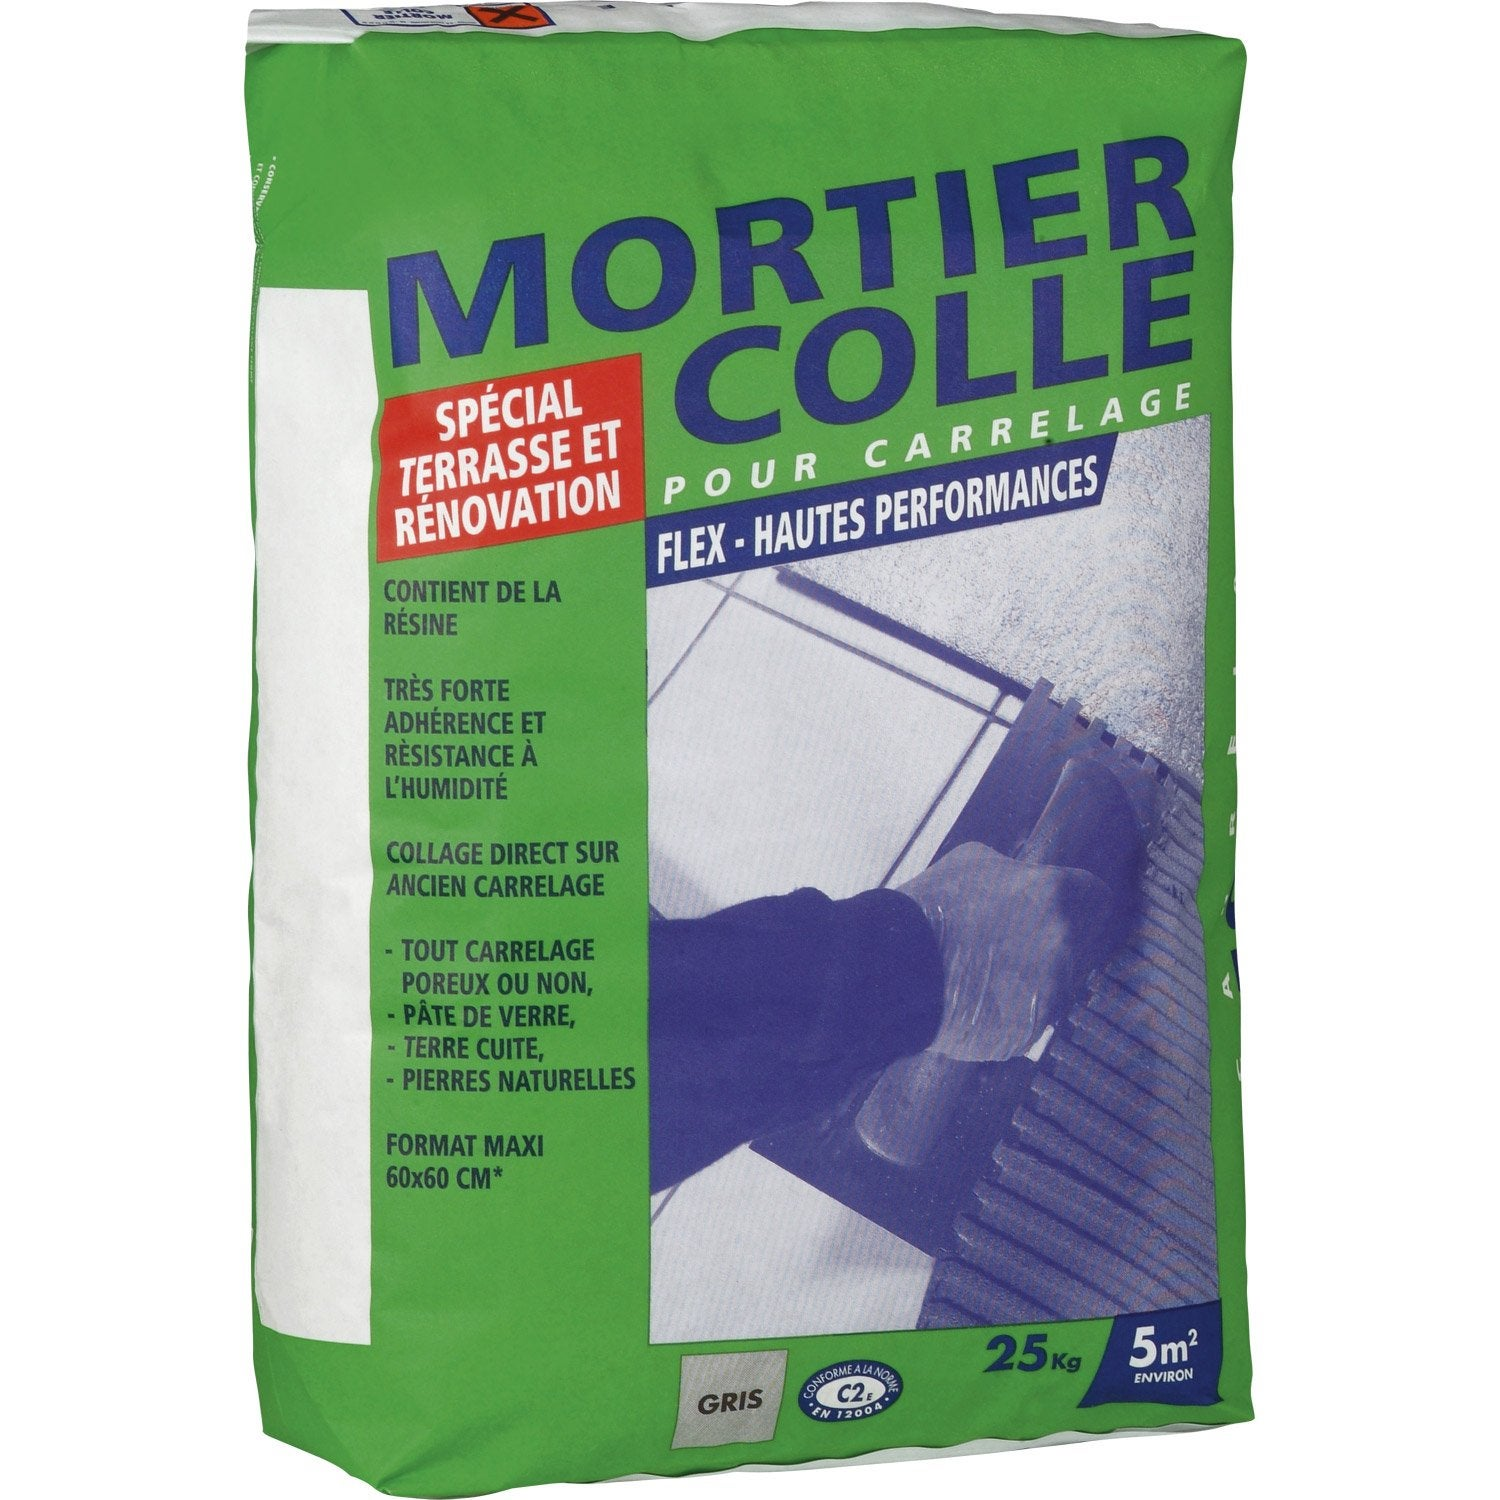 mortier colle flex, gris, 25 kg | leroy merlin